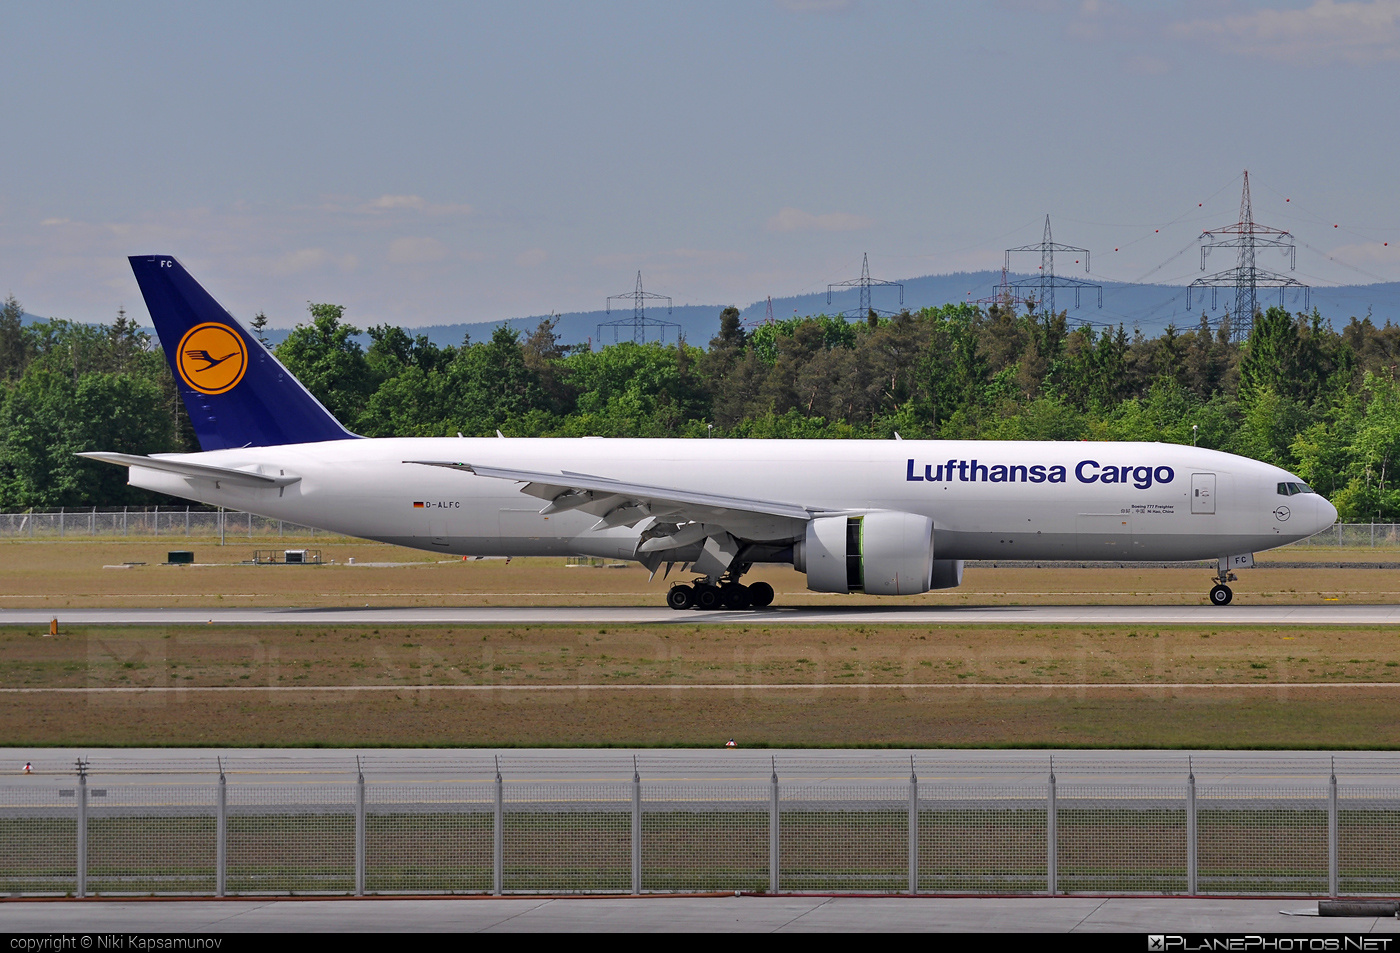 Boeing 777F - D-ALFC operated by Lufthansa Cargo #b777 #b777f #b777freighter #boeing #boeing777 #lufthansa #lufthansacargo #tripleseven